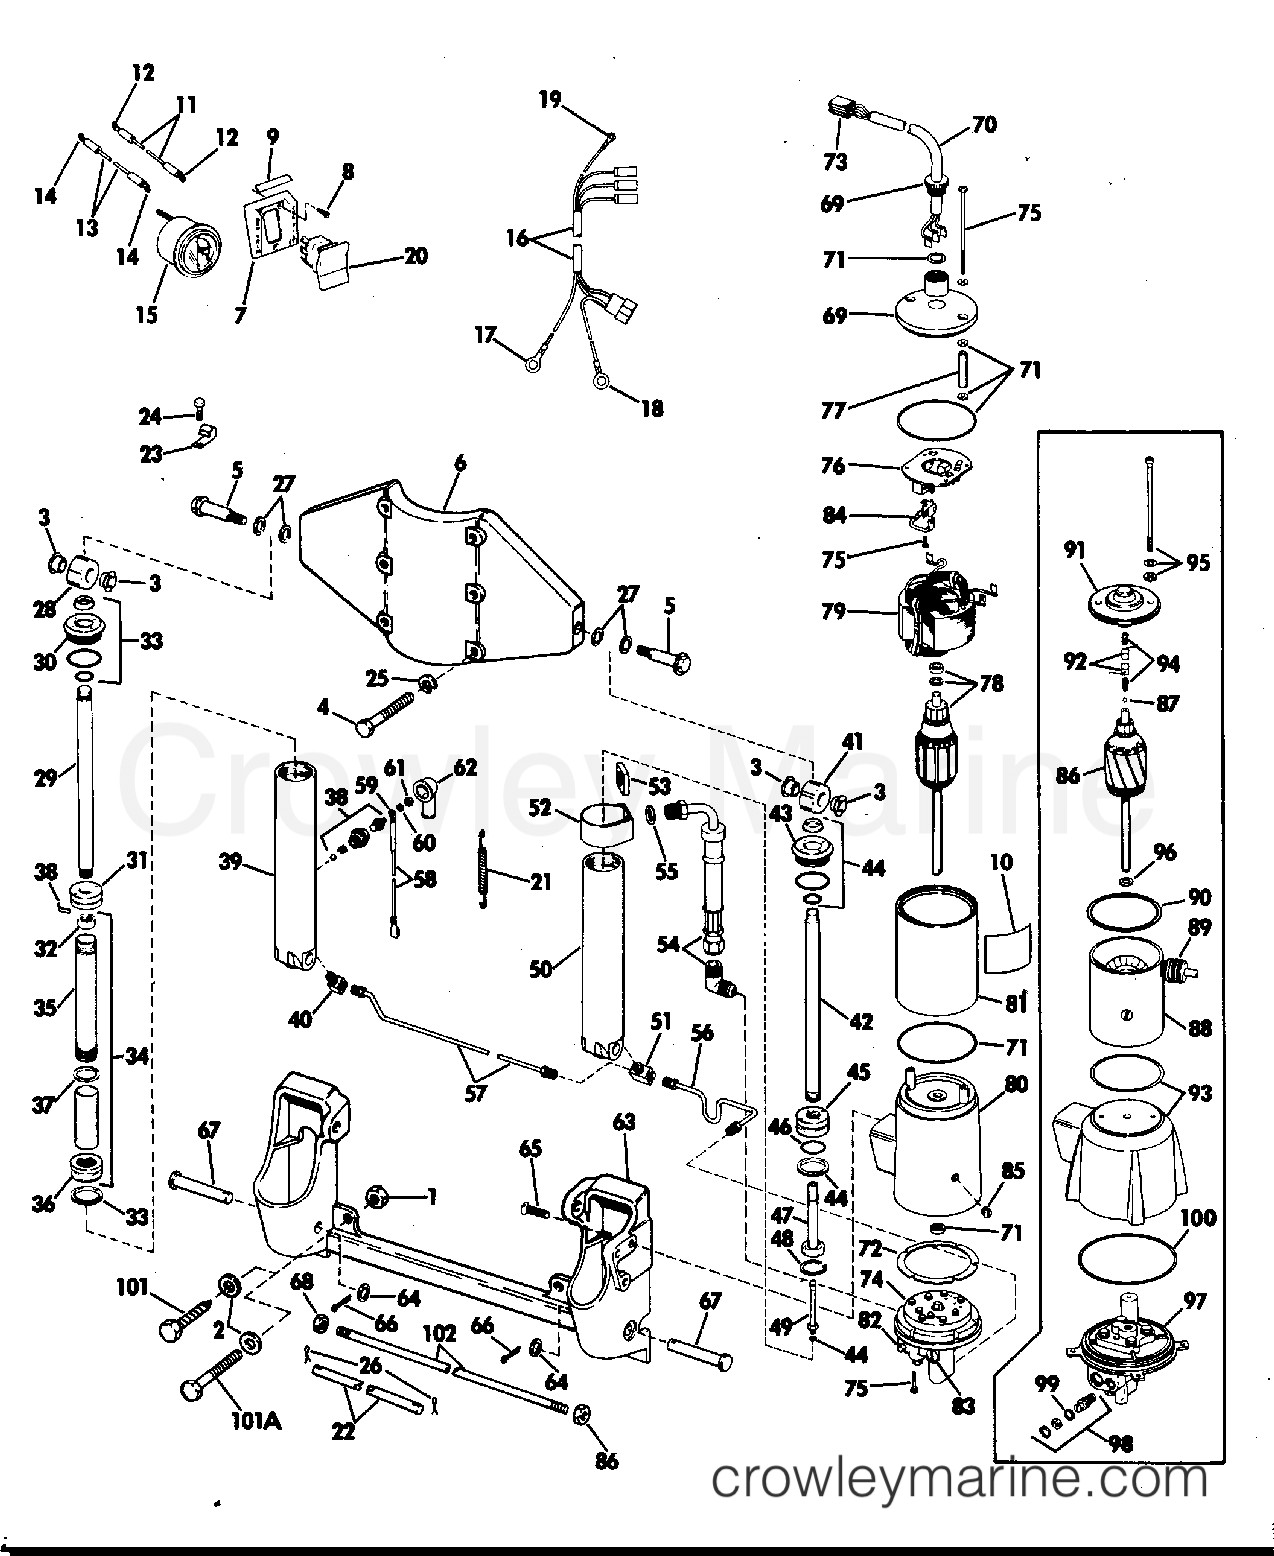 15 Hp Evinrude Parts Diagram Power Tilt and Trim 50 Hp 1974 Rigging Parts Accessories Of 15 Hp Evinrude Parts Diagram